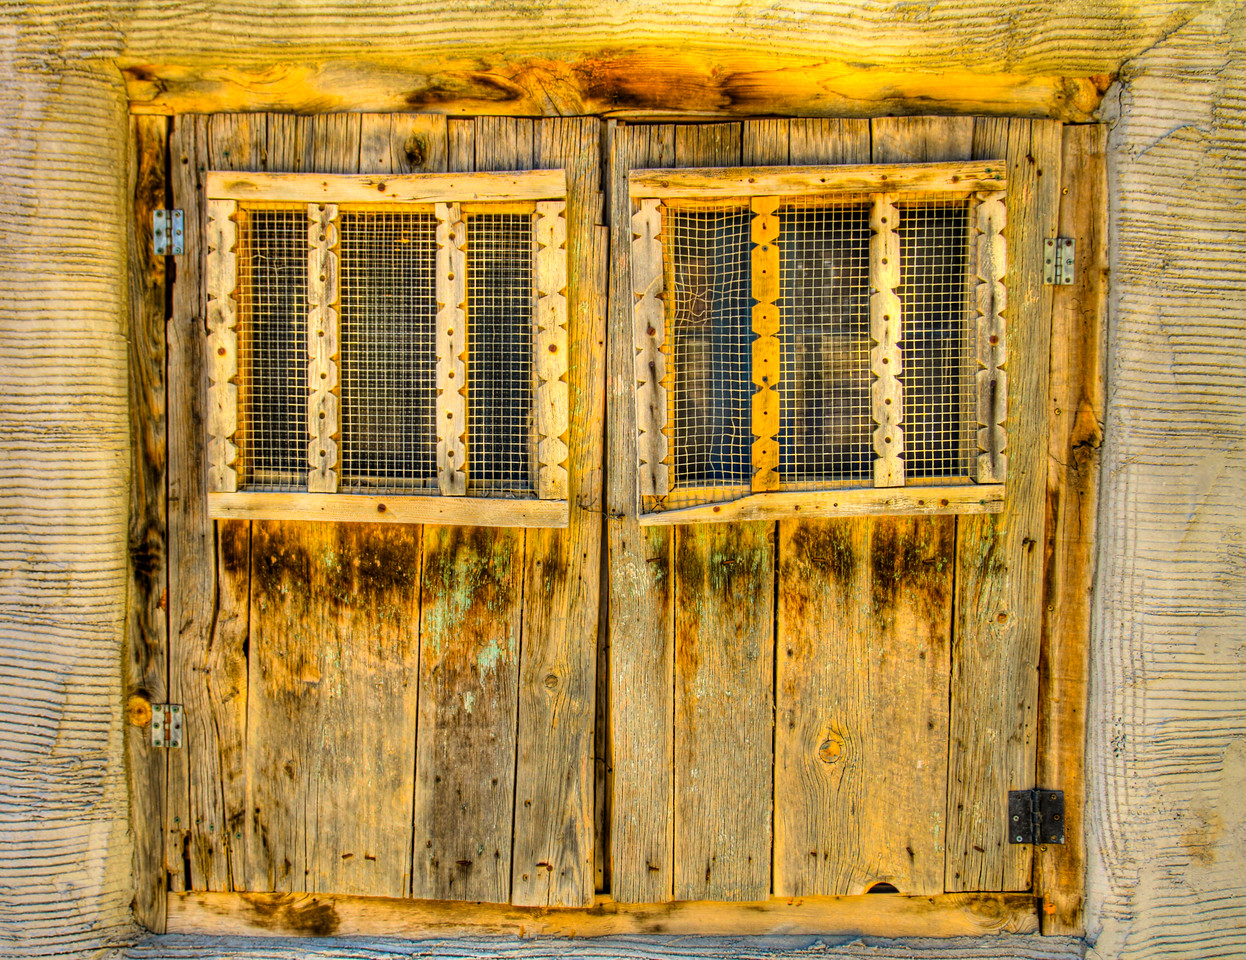 I like the old wooden doors and windows on some of the historical houses in and around Taos, New Mexico